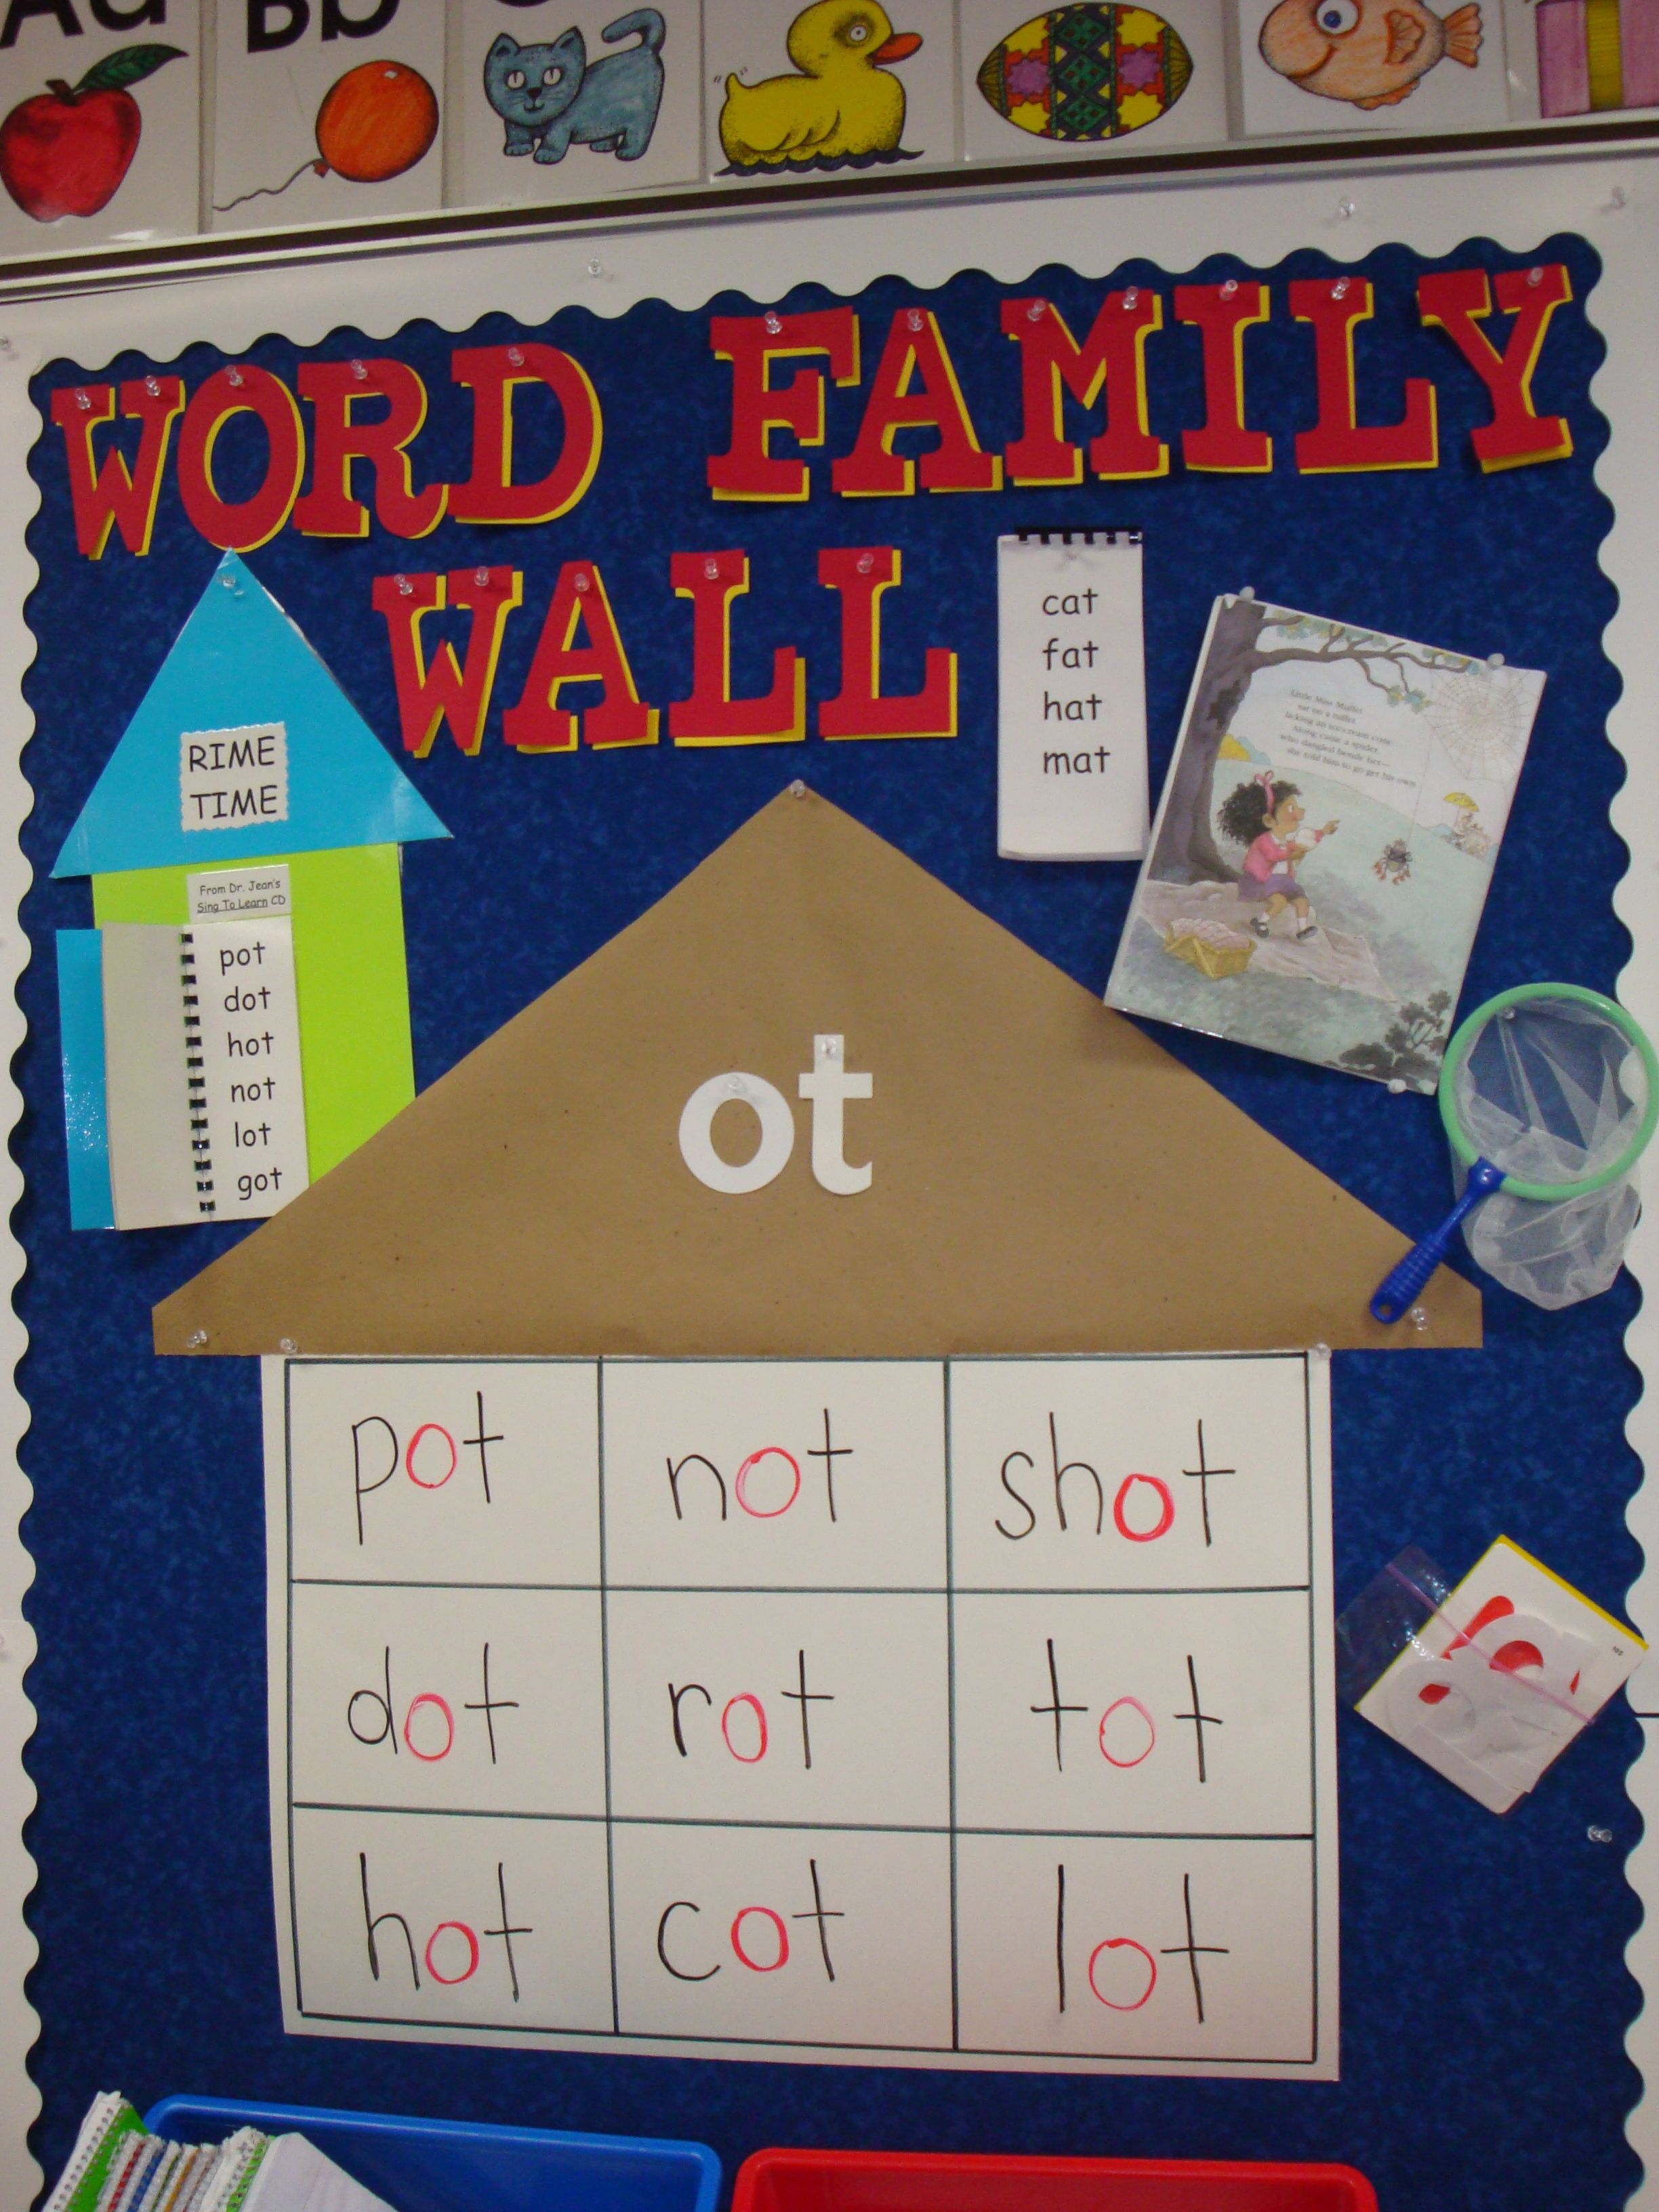 Word Family Word Wall Laminate The House So You Can